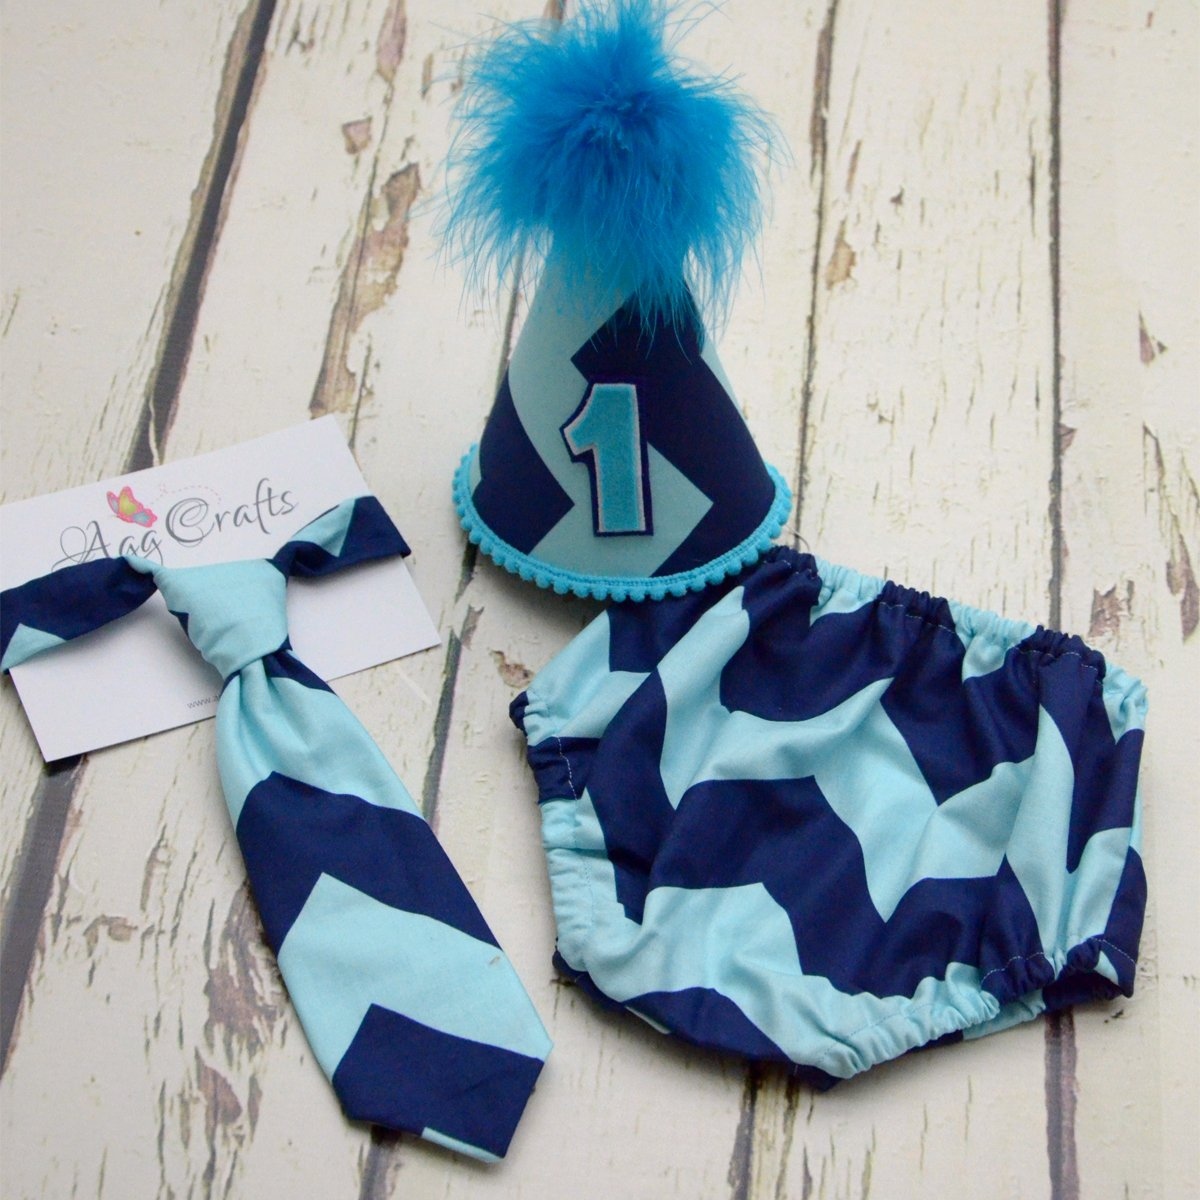 18a58b61a57 Boys Cake Smash Outfit - First birthday Baby boy outfit  Amazon.co.uk   Handmade